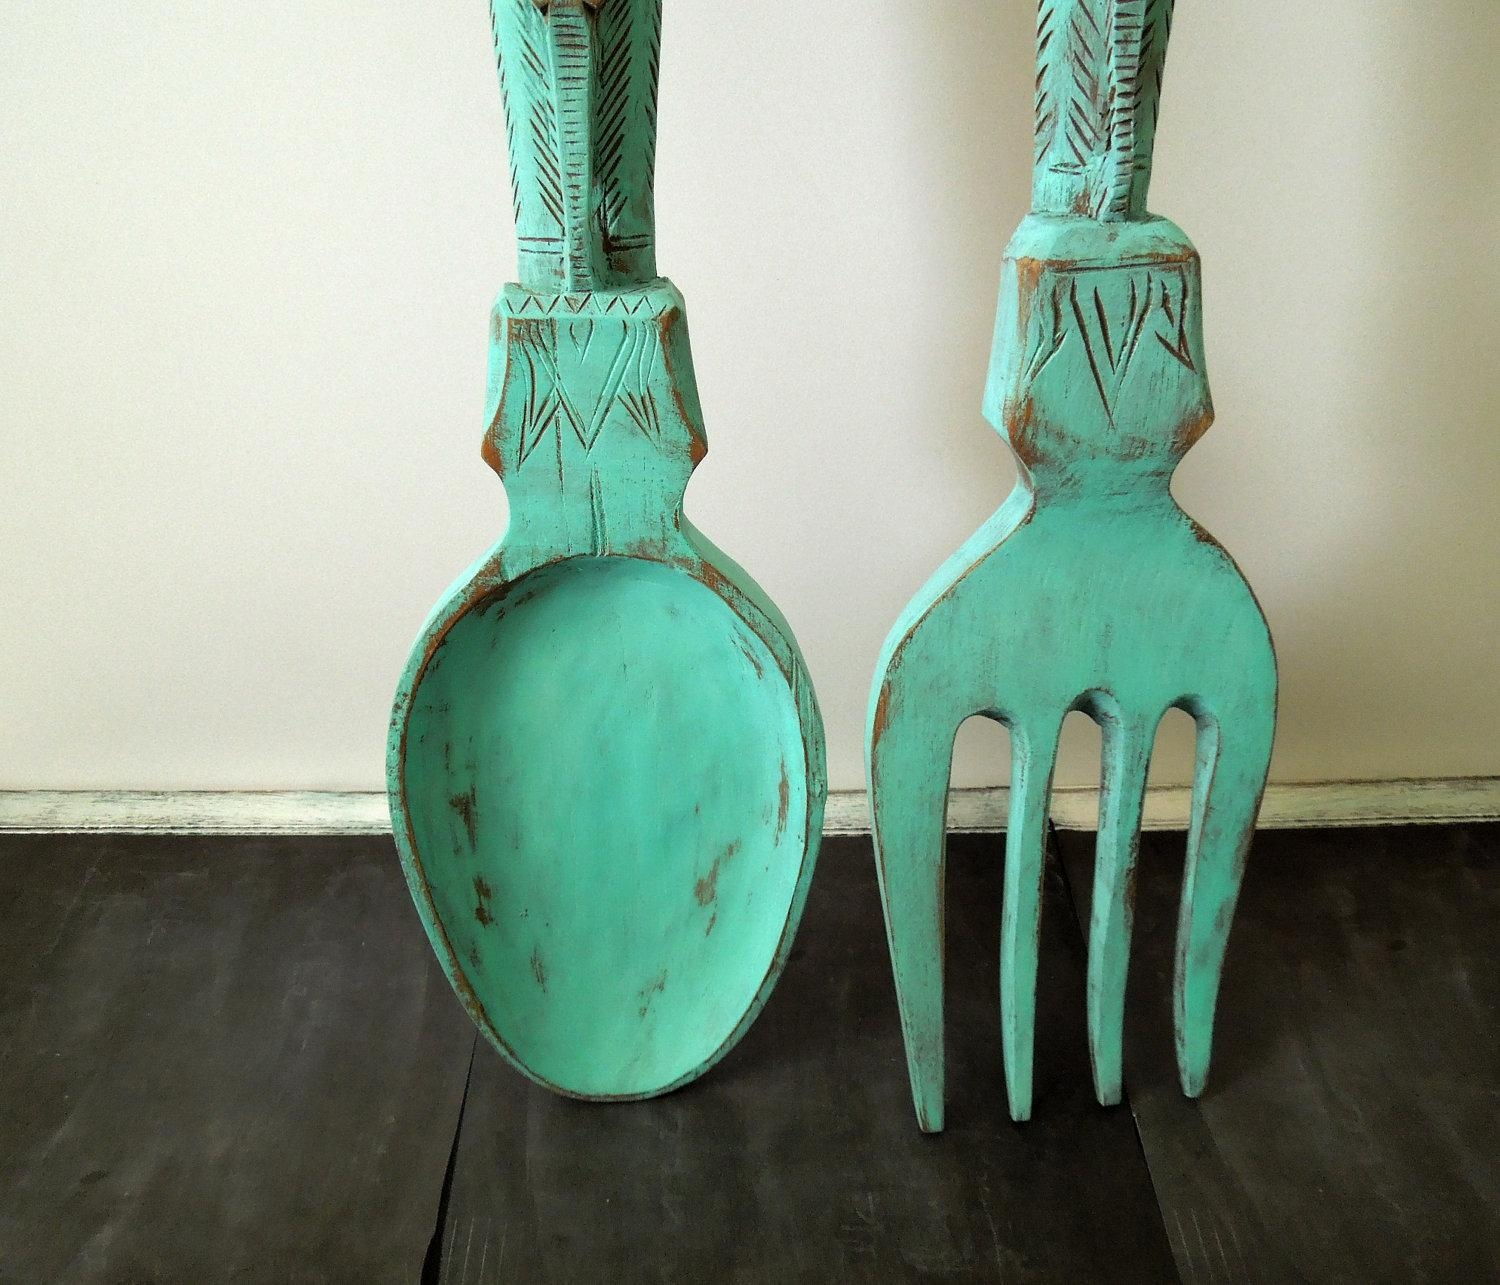 Large Spoon And Fork Wall Art : Oversized Spoon And Fork Wall With Large Spoon And Fork Wall Art (Image 13 of 20)